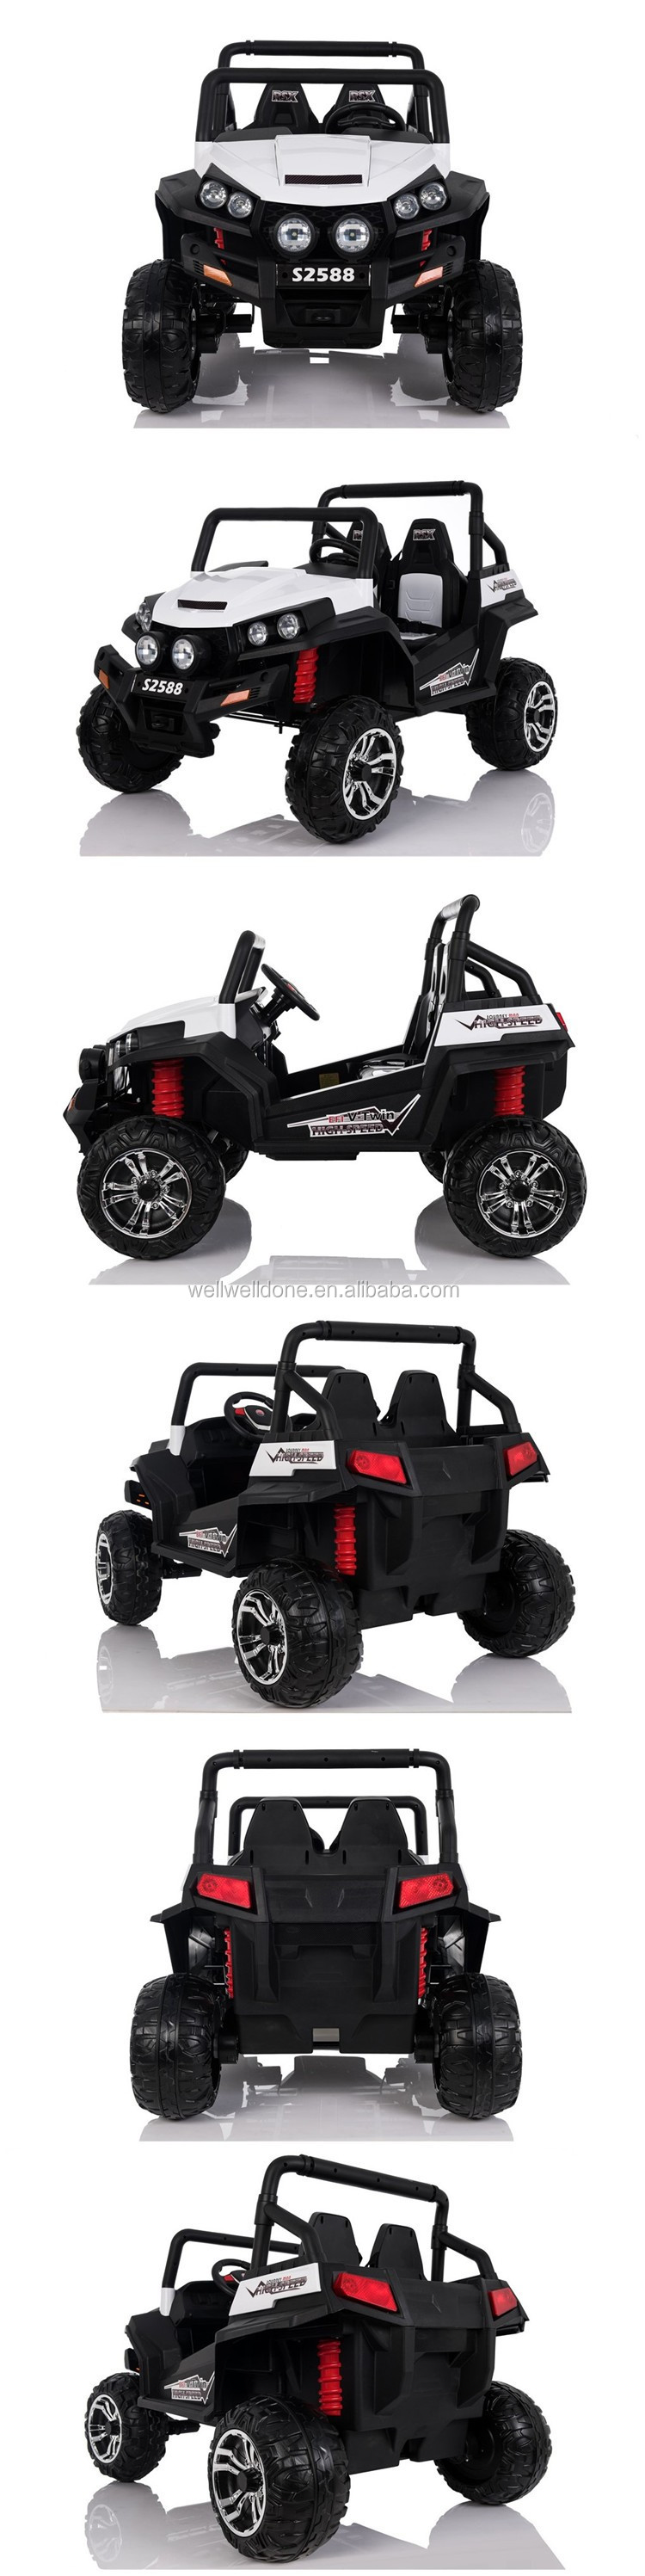 Newest two seats big jeep ride on car, with super suspension WDS2588